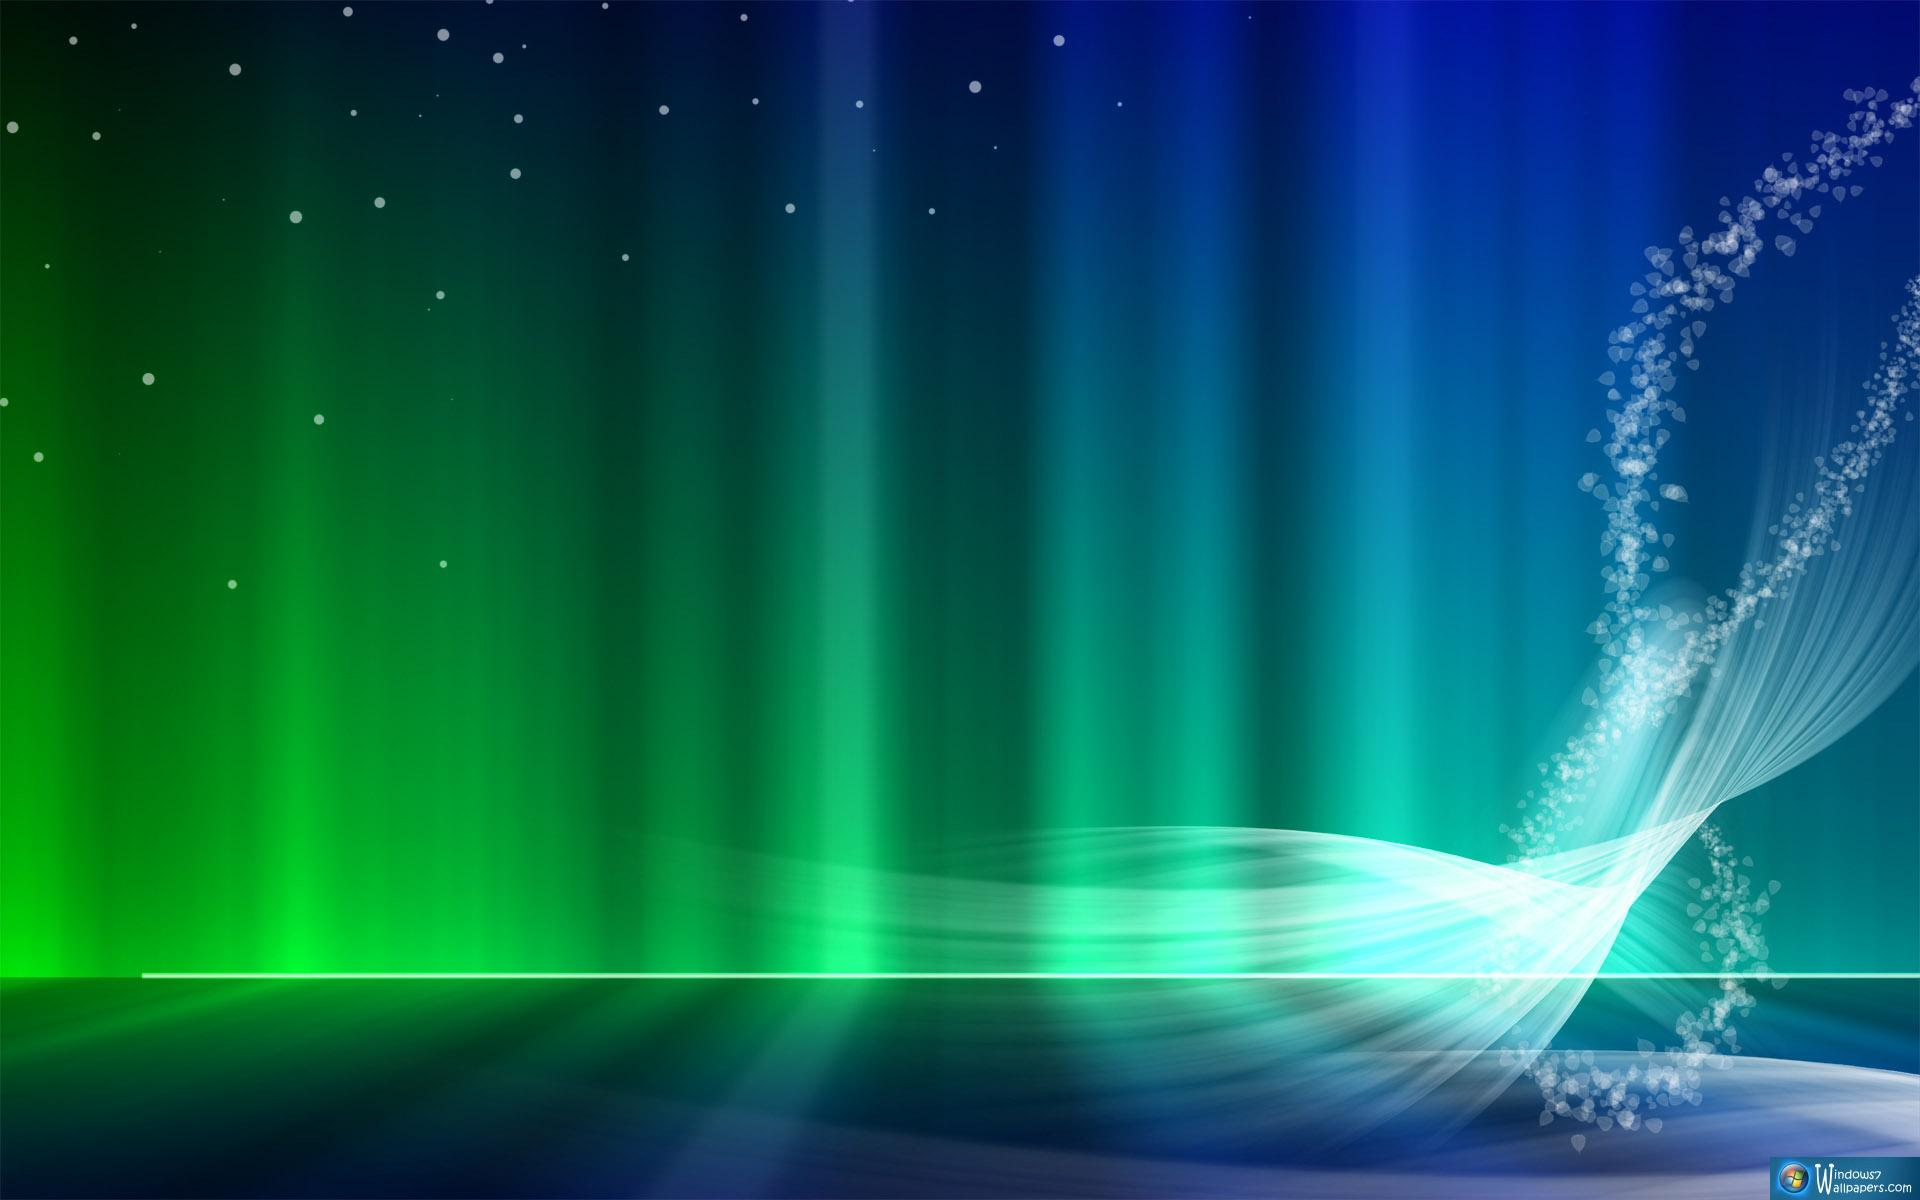 25 High Quality Windows 7 Wallpapers